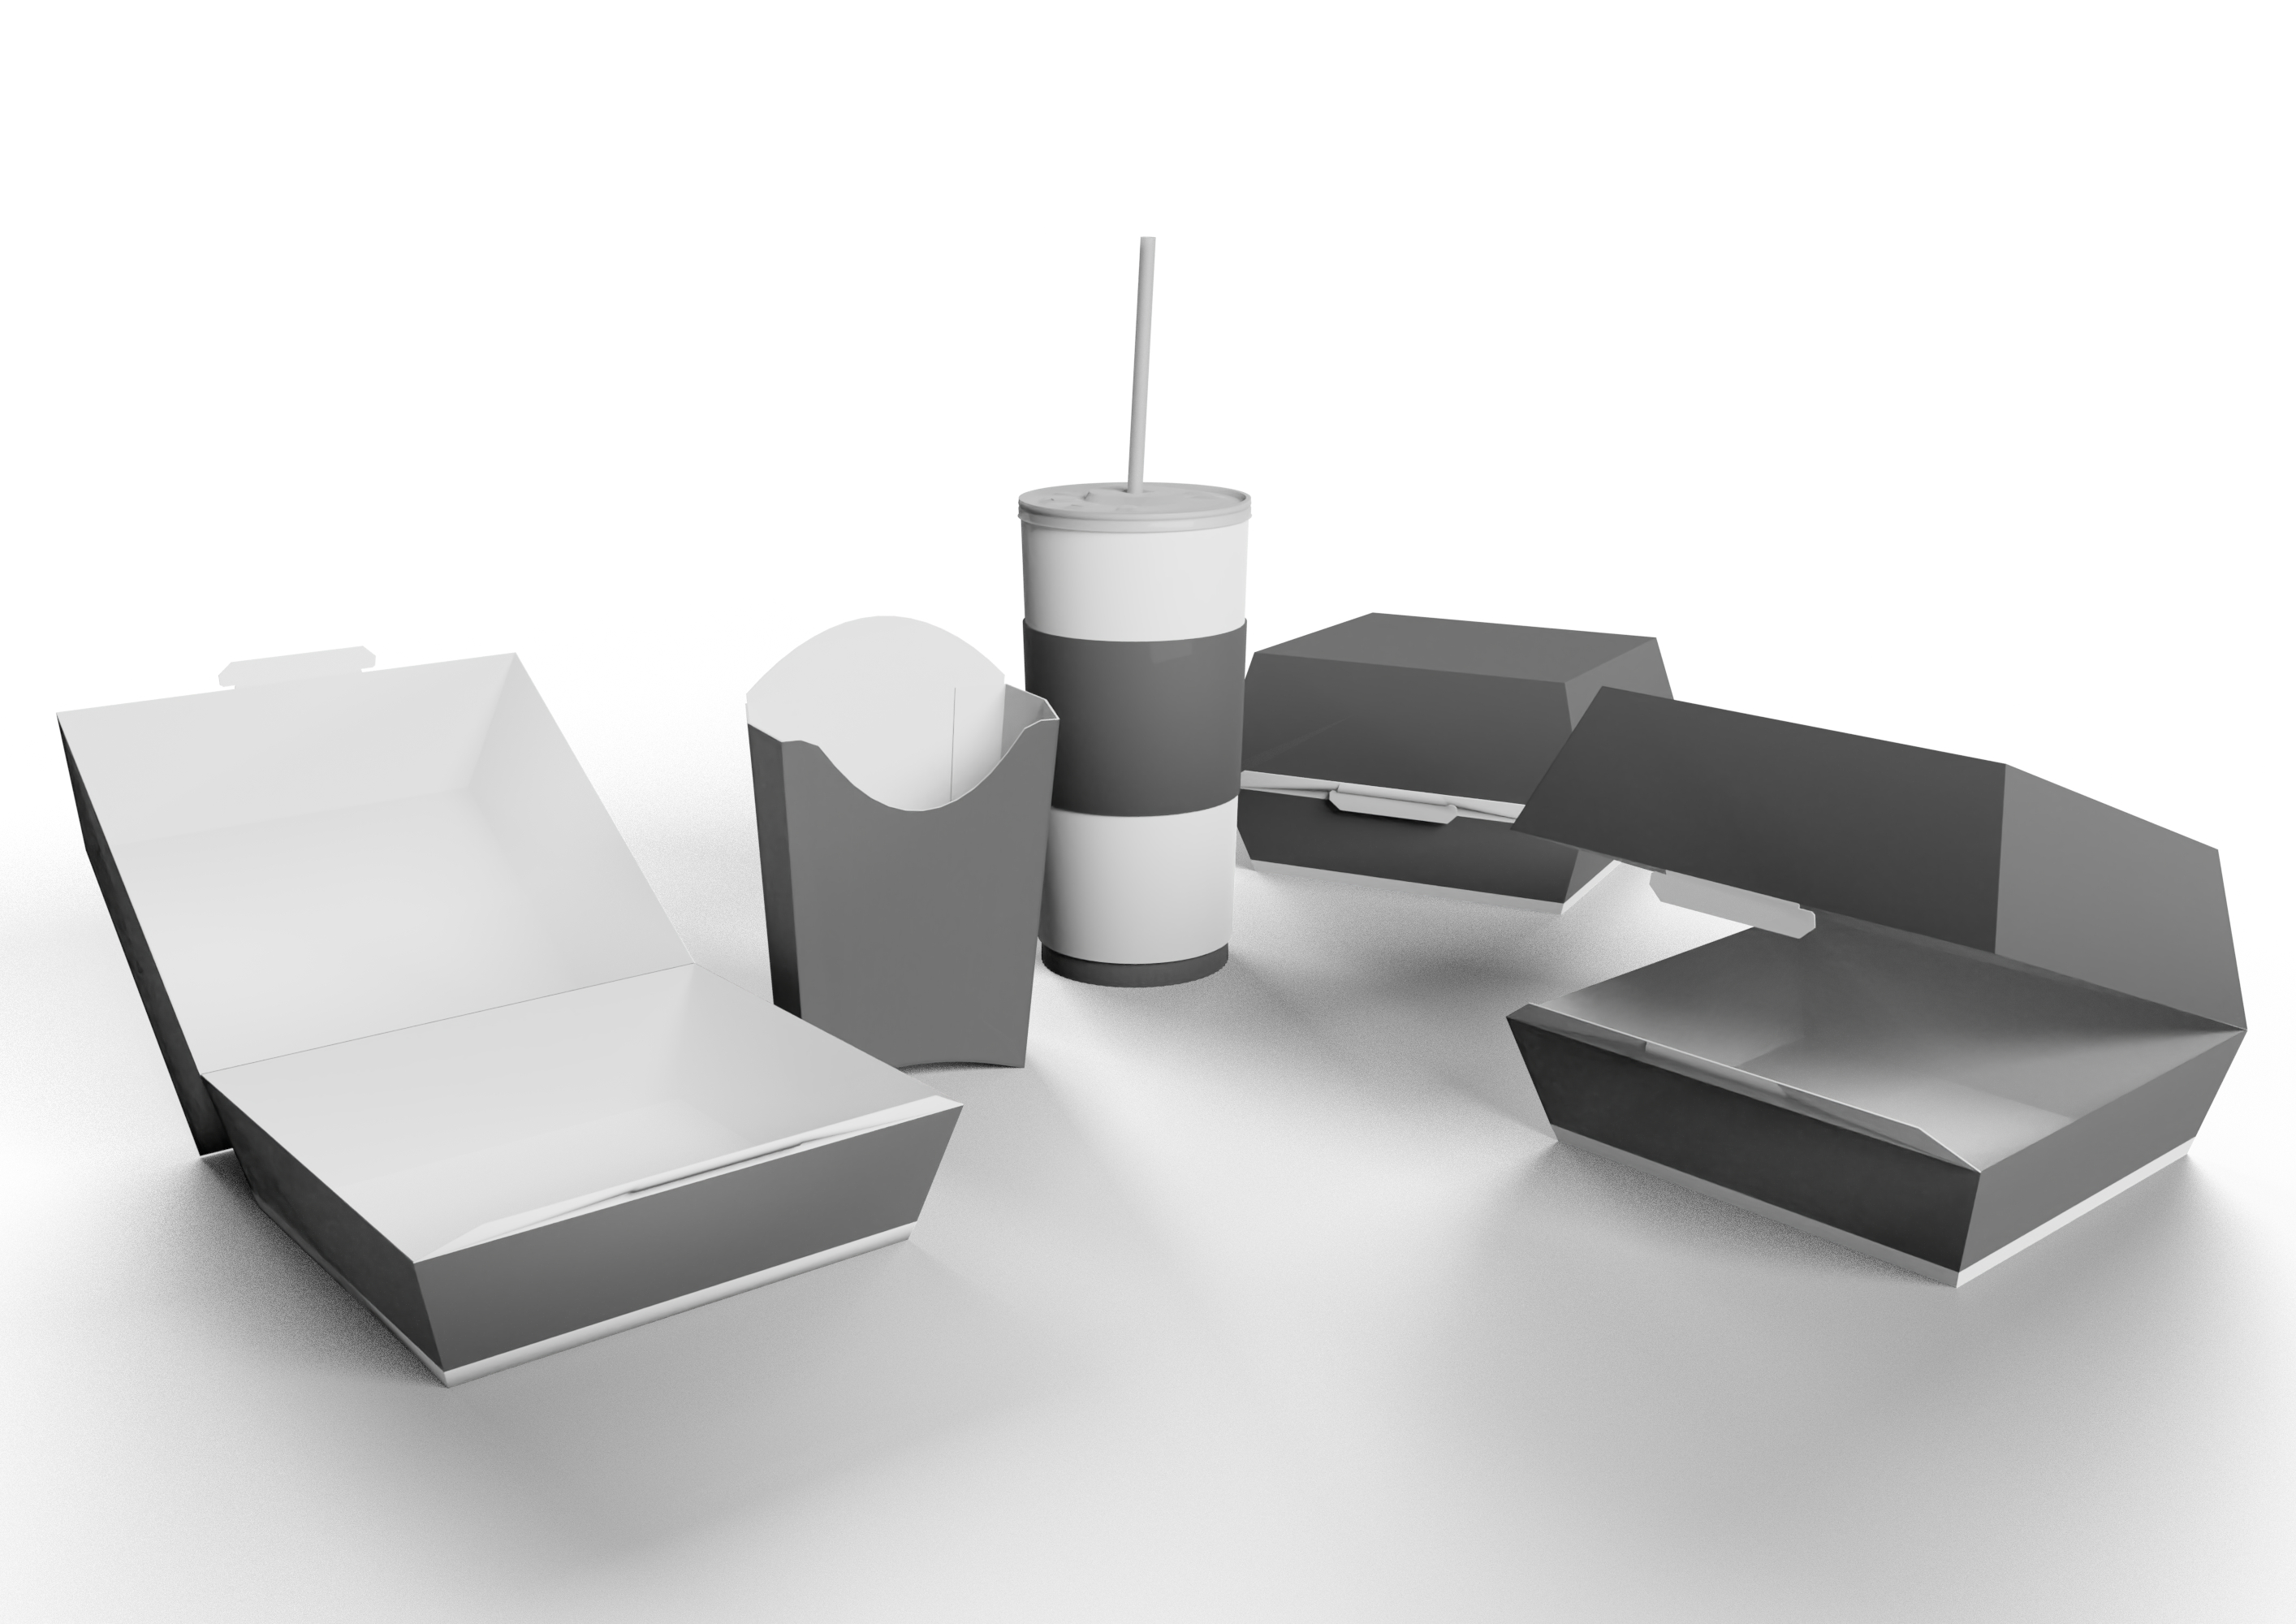 Fast Food Containers preview image 1